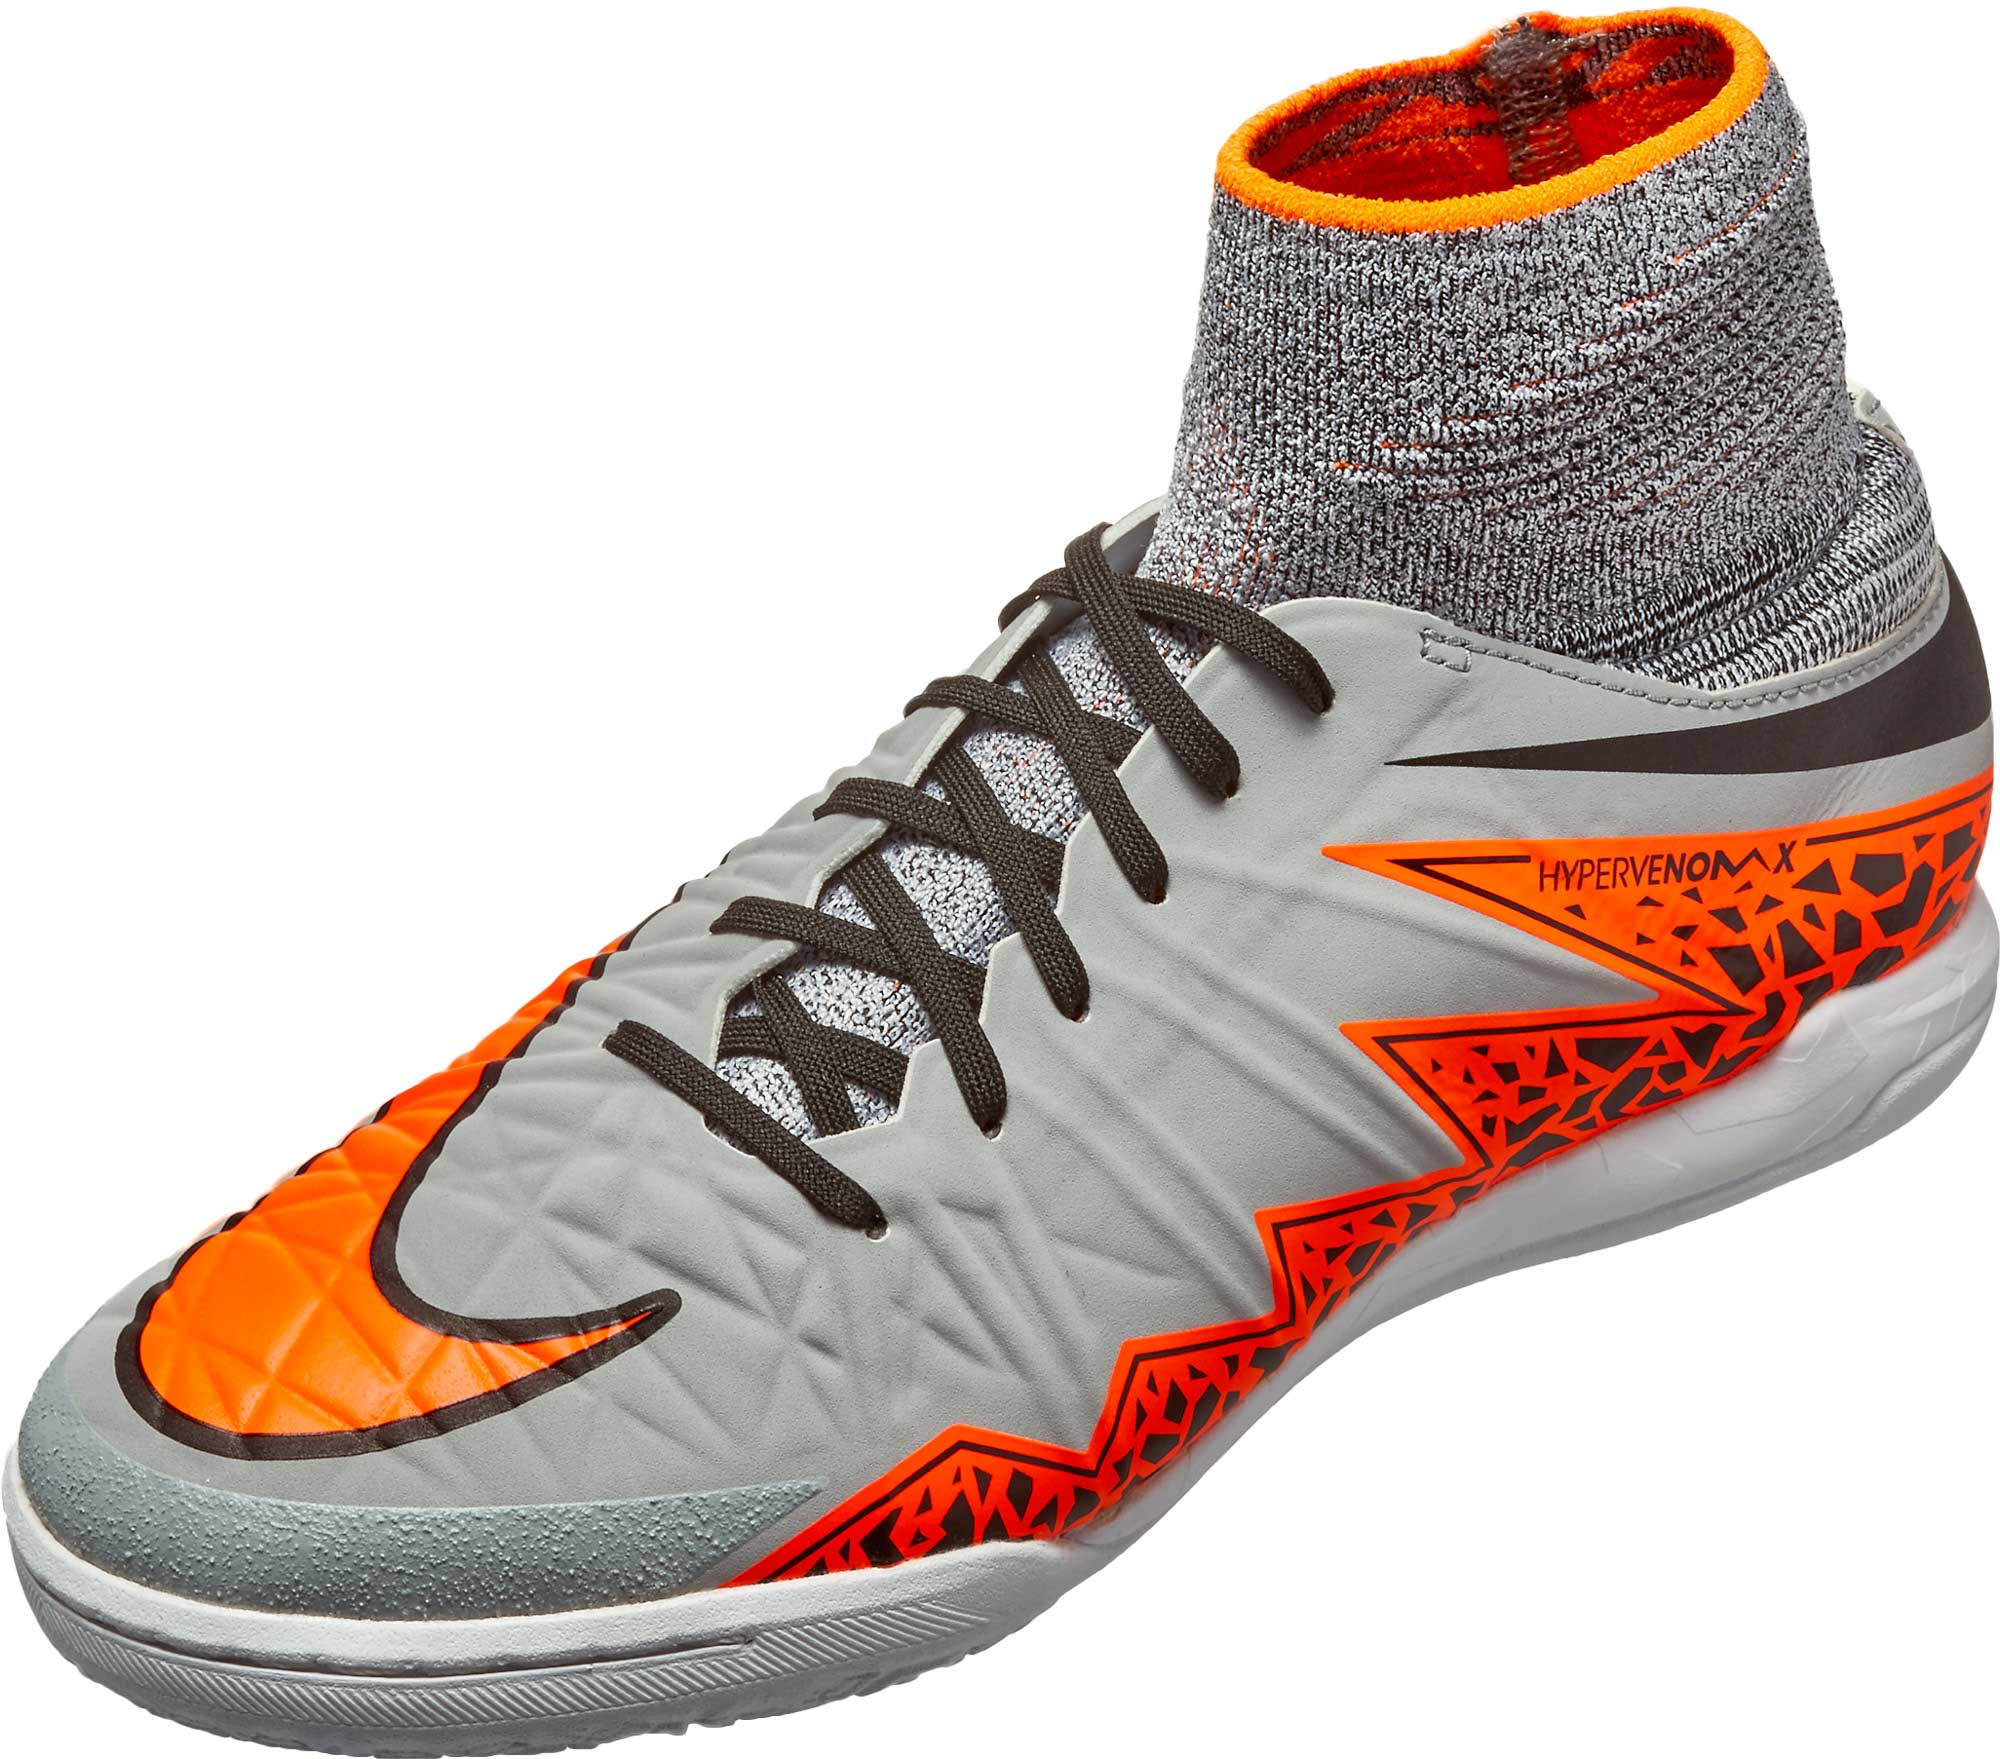 timeless design 57e7a 3e9a9 ... new style nike kids hypervenomx proximo indoor shoes grey black 60ddd  d9f88